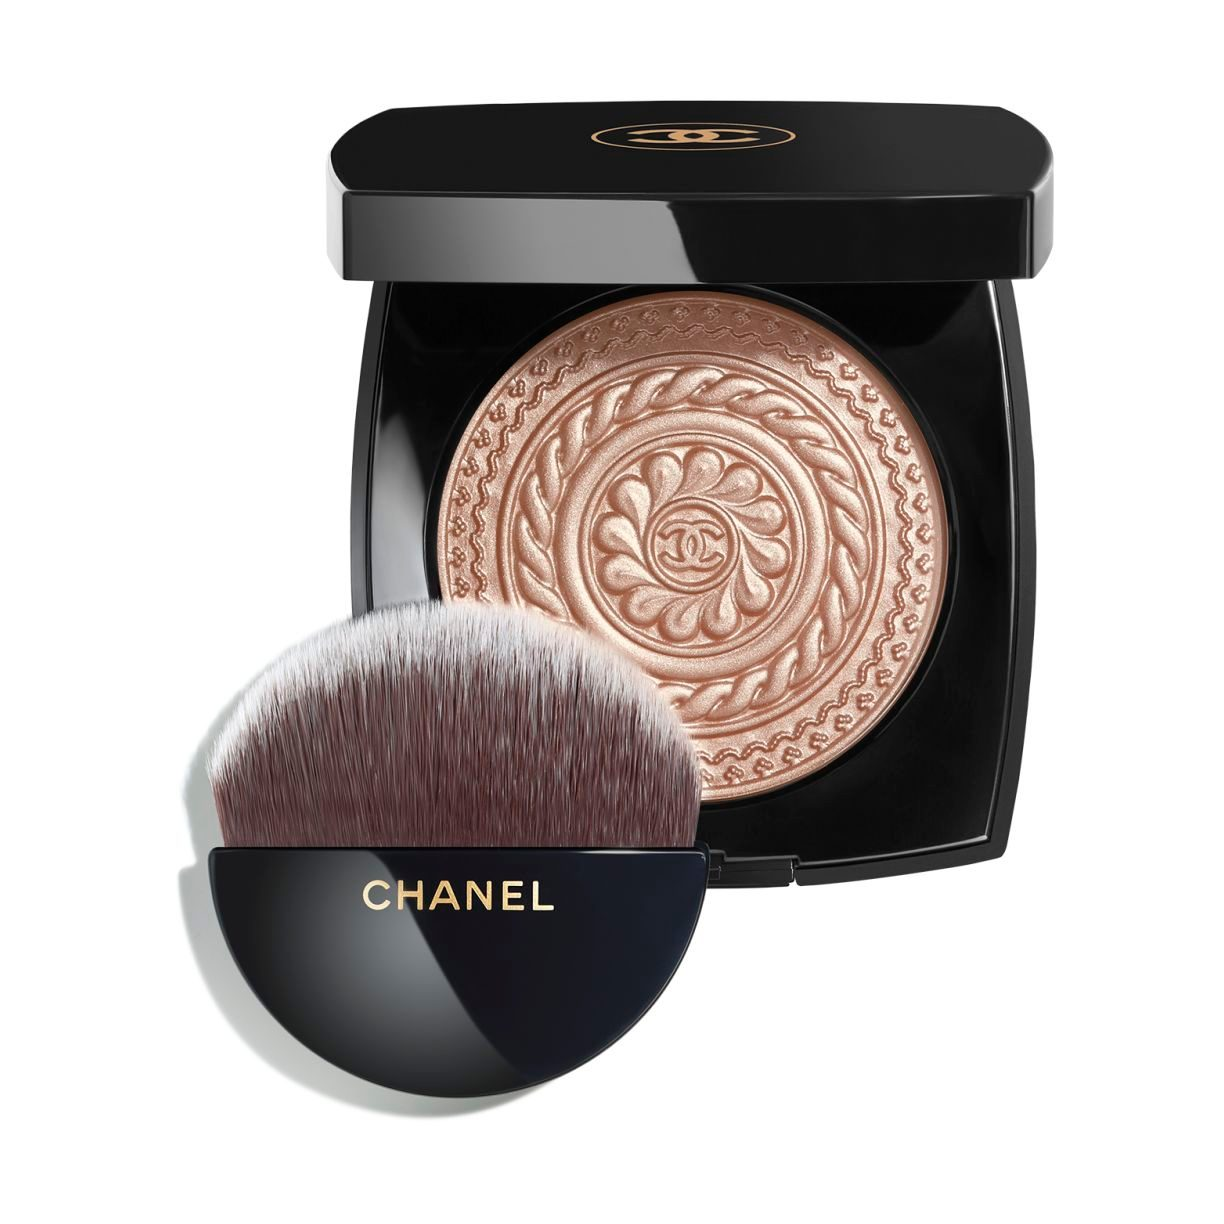 ÉCLAT MAGNÉTIQUE DE CHANEL EXCLUSIVE CREATION - LIMITED EDITION ILLUMINATING POWDER - METAL PEACH